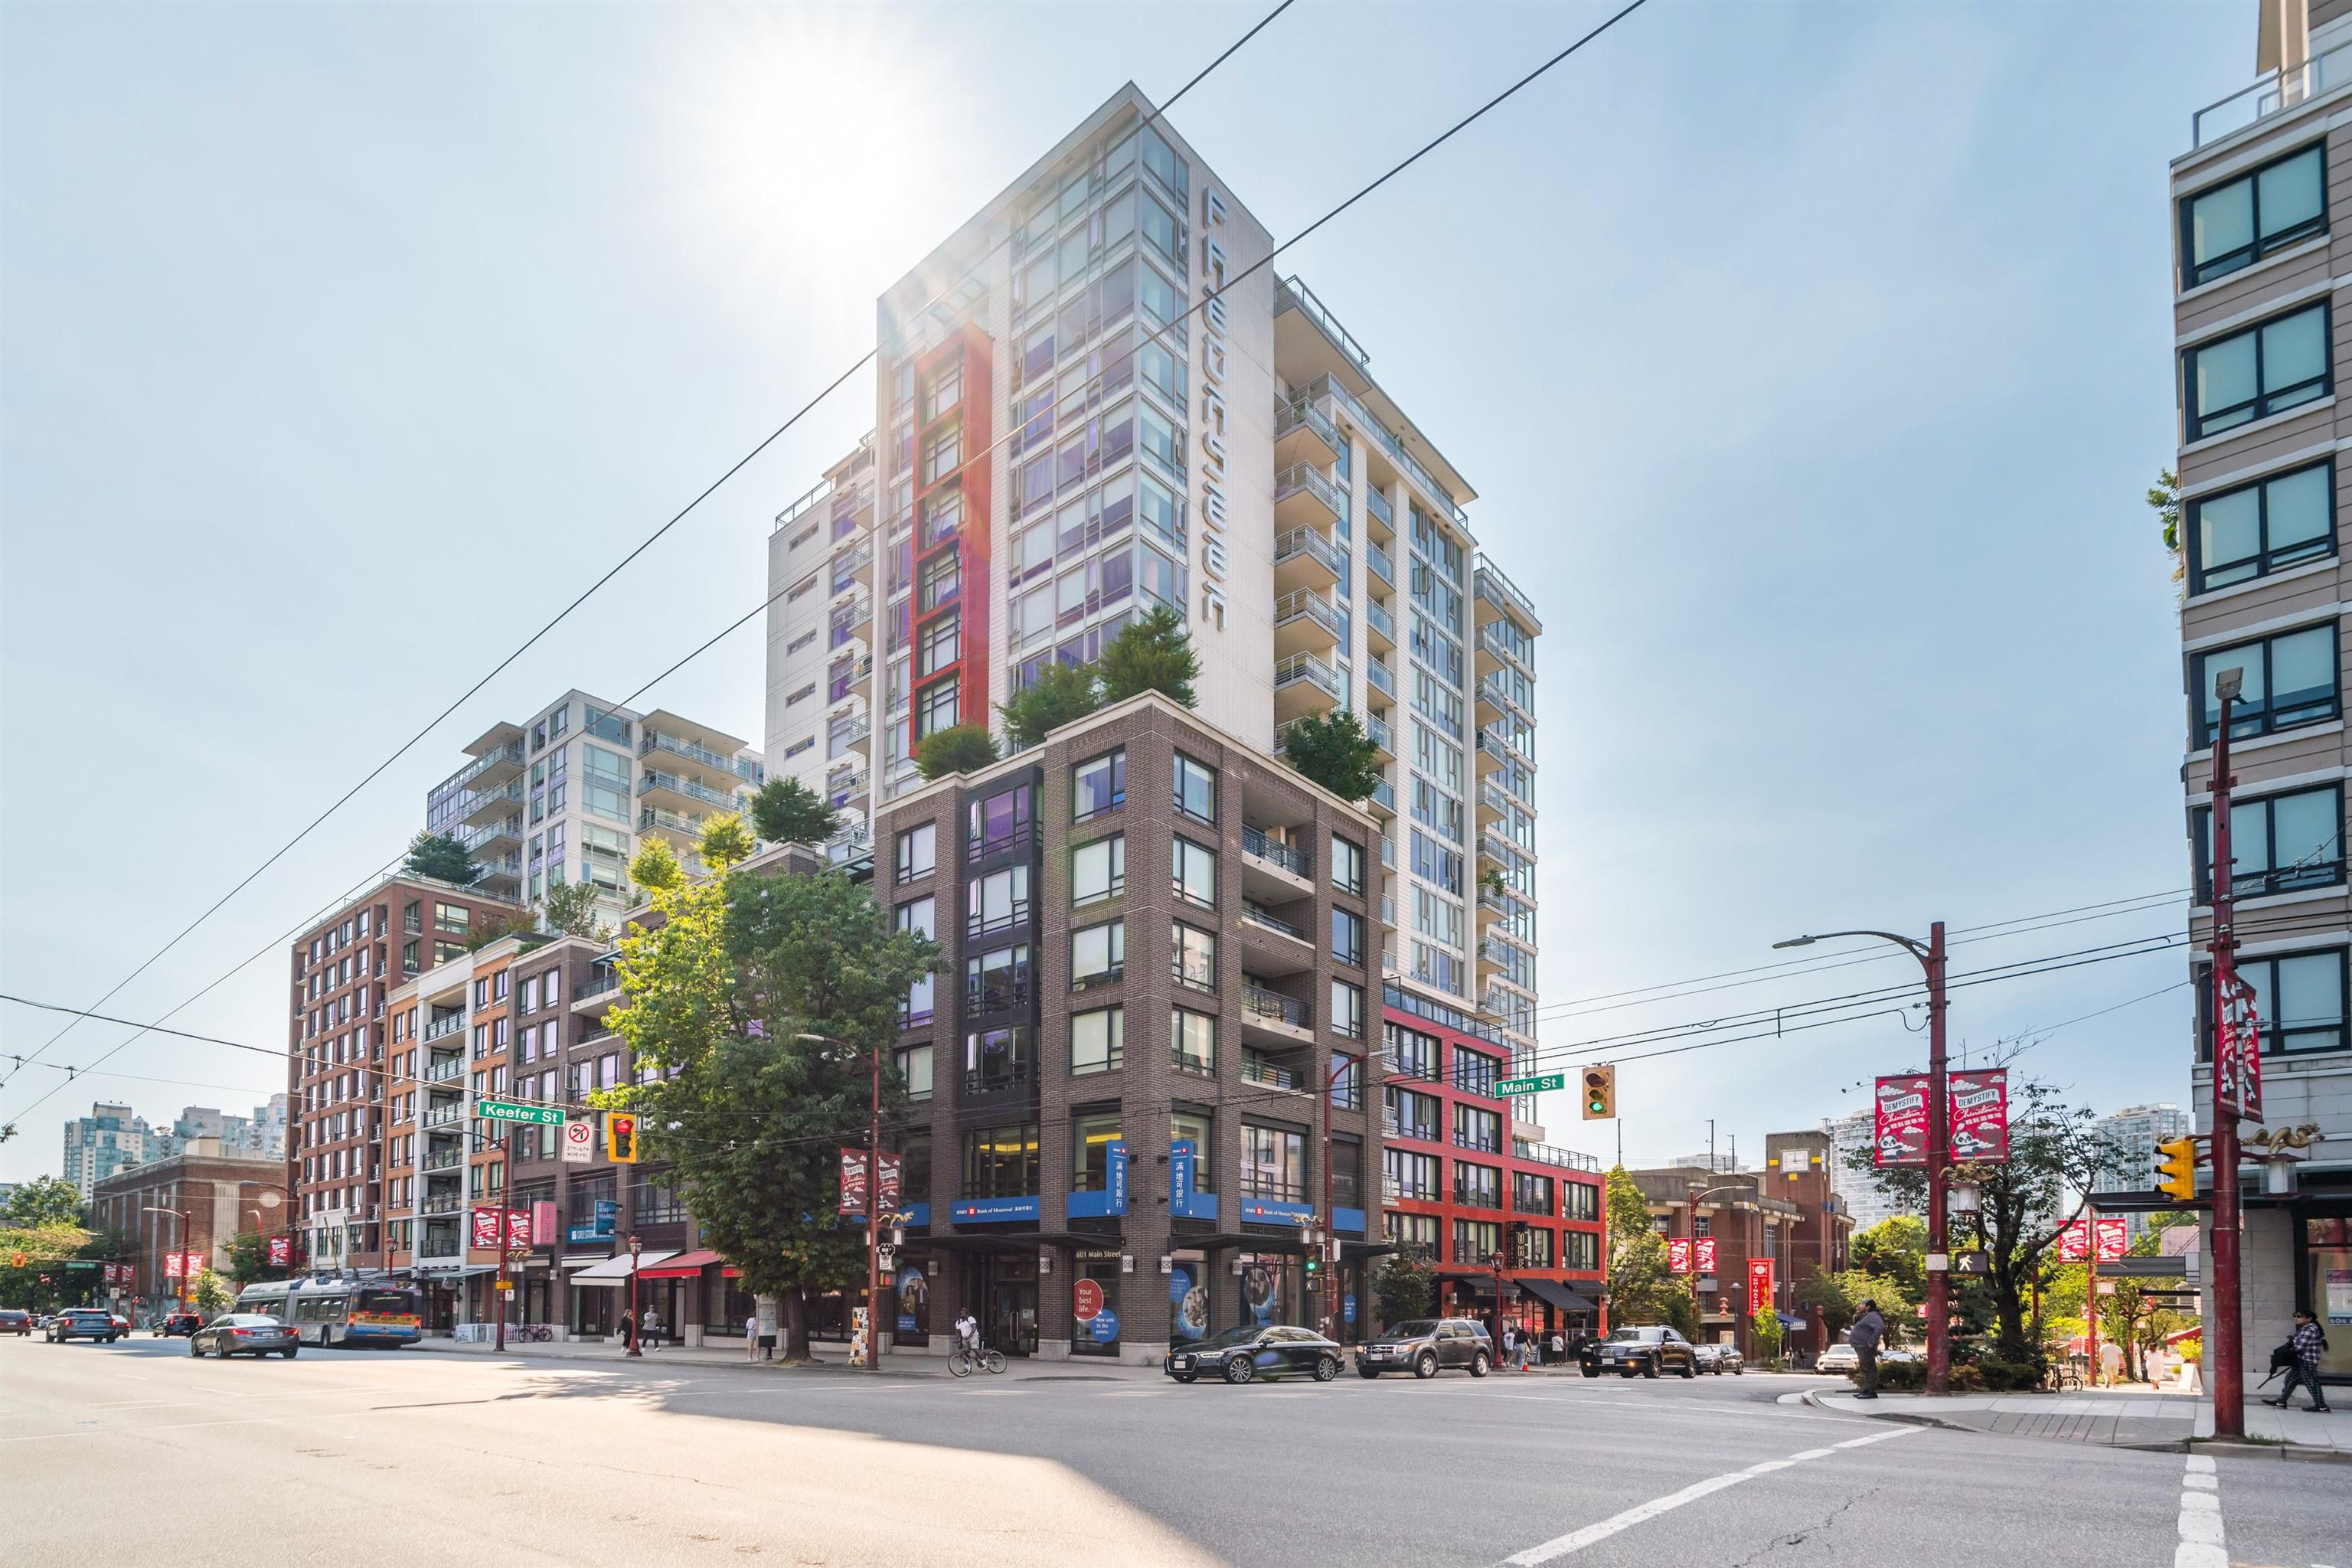 Main Photo: 1106 188 KEEFER STREET in Vancouver: Downtown VE Condo for sale (Vancouver East)  : MLS®# R2612528